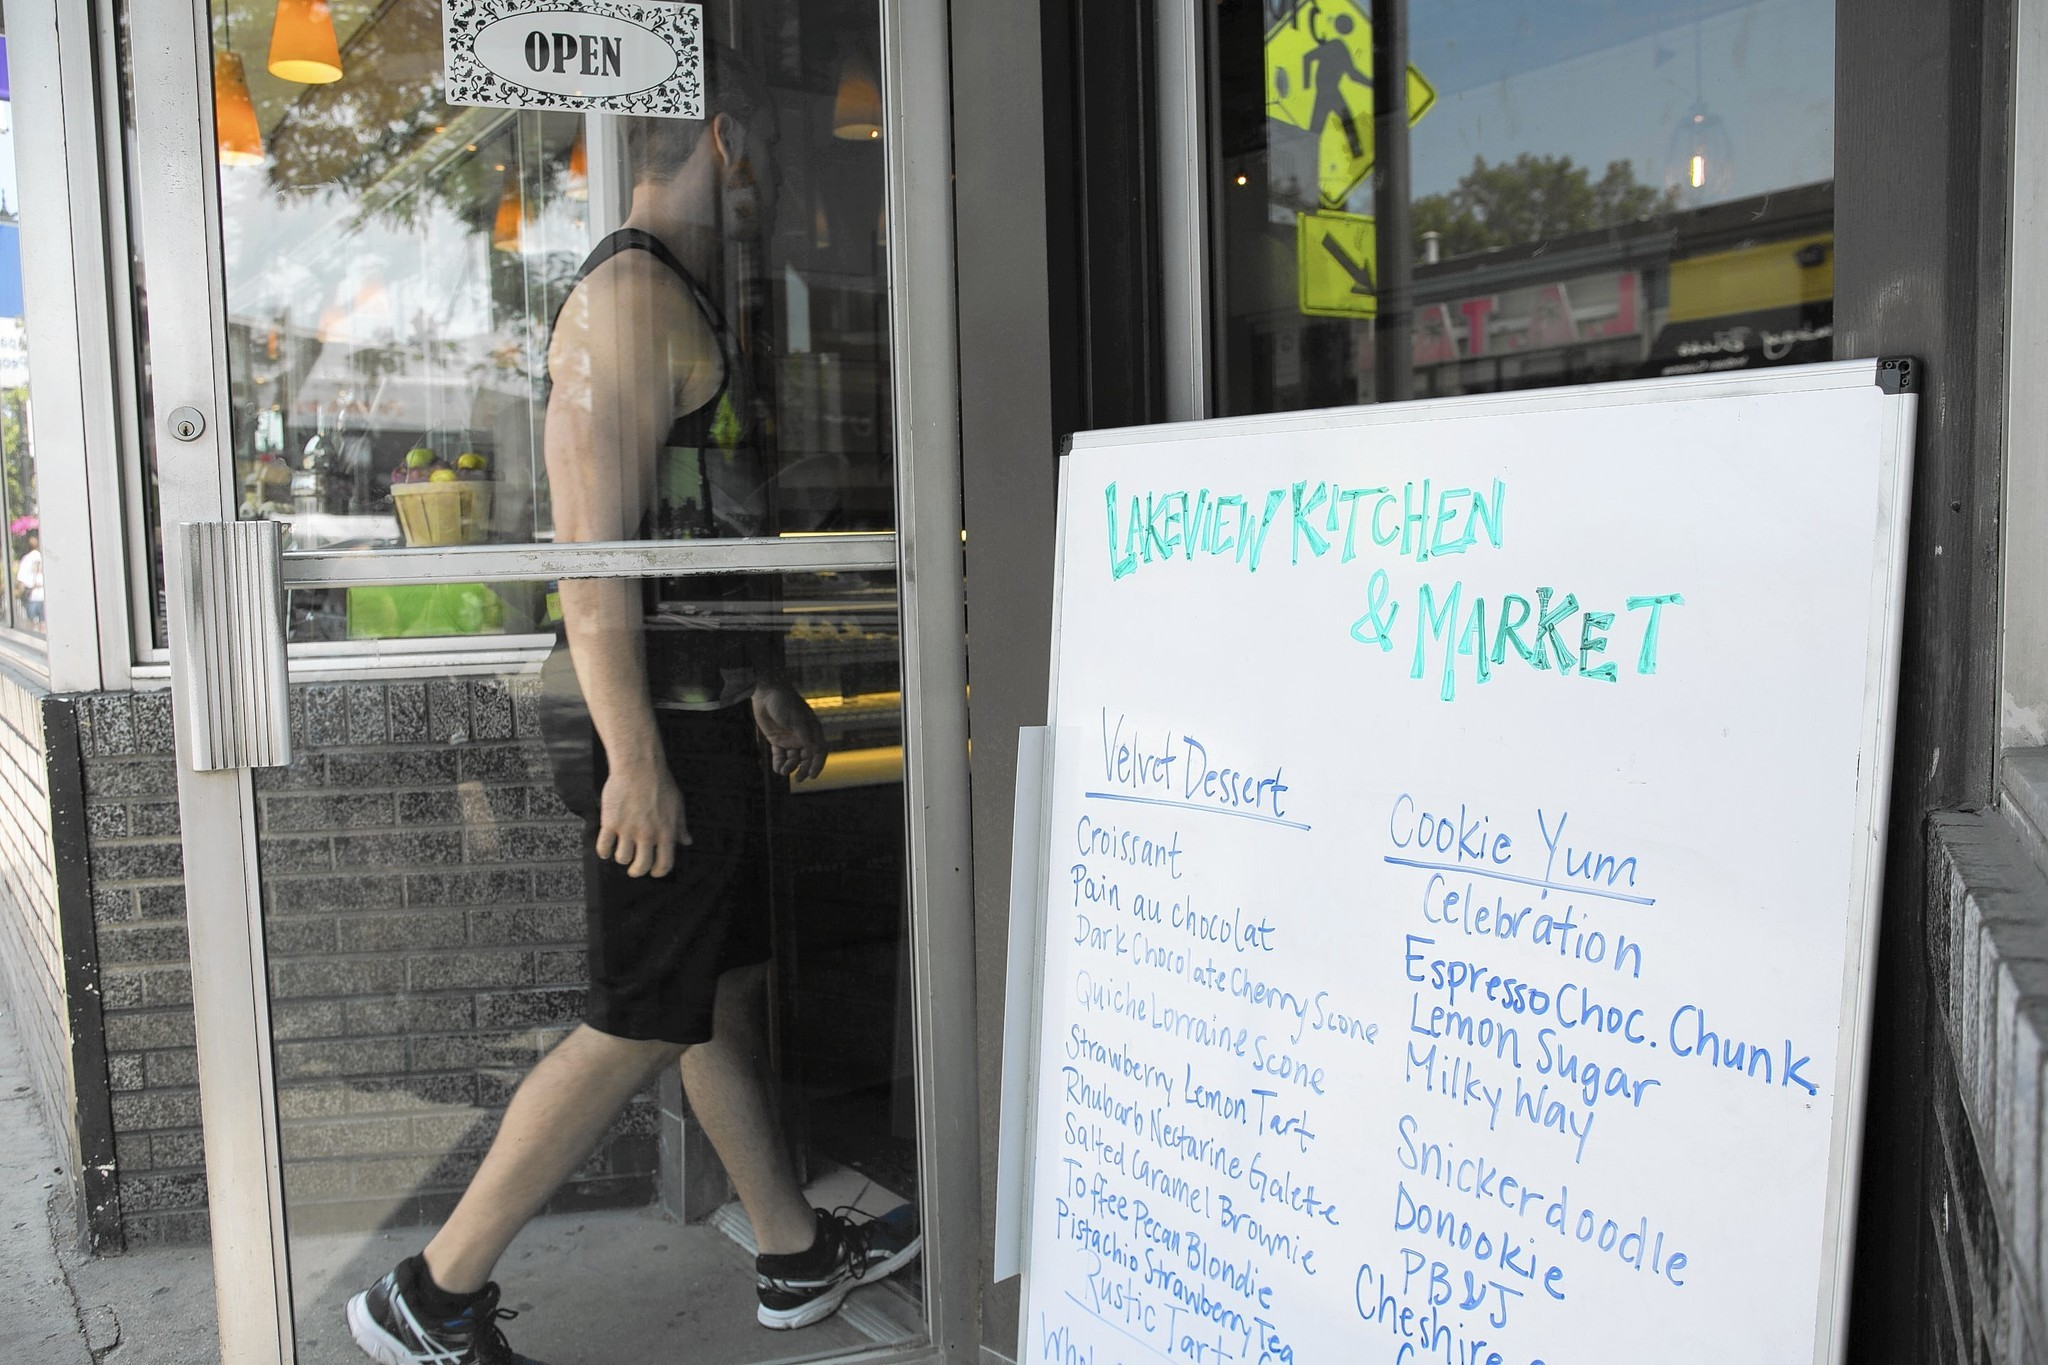 lakeview shared kitchen offers wares for sale too chicago tribune